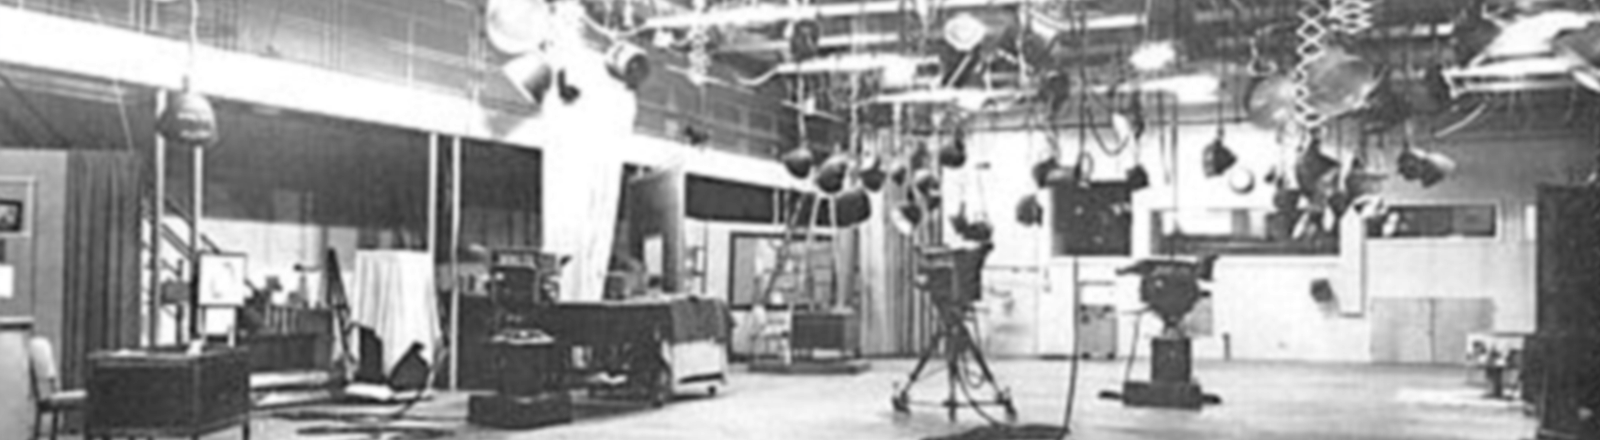 Vintage image of WWL TV Studio